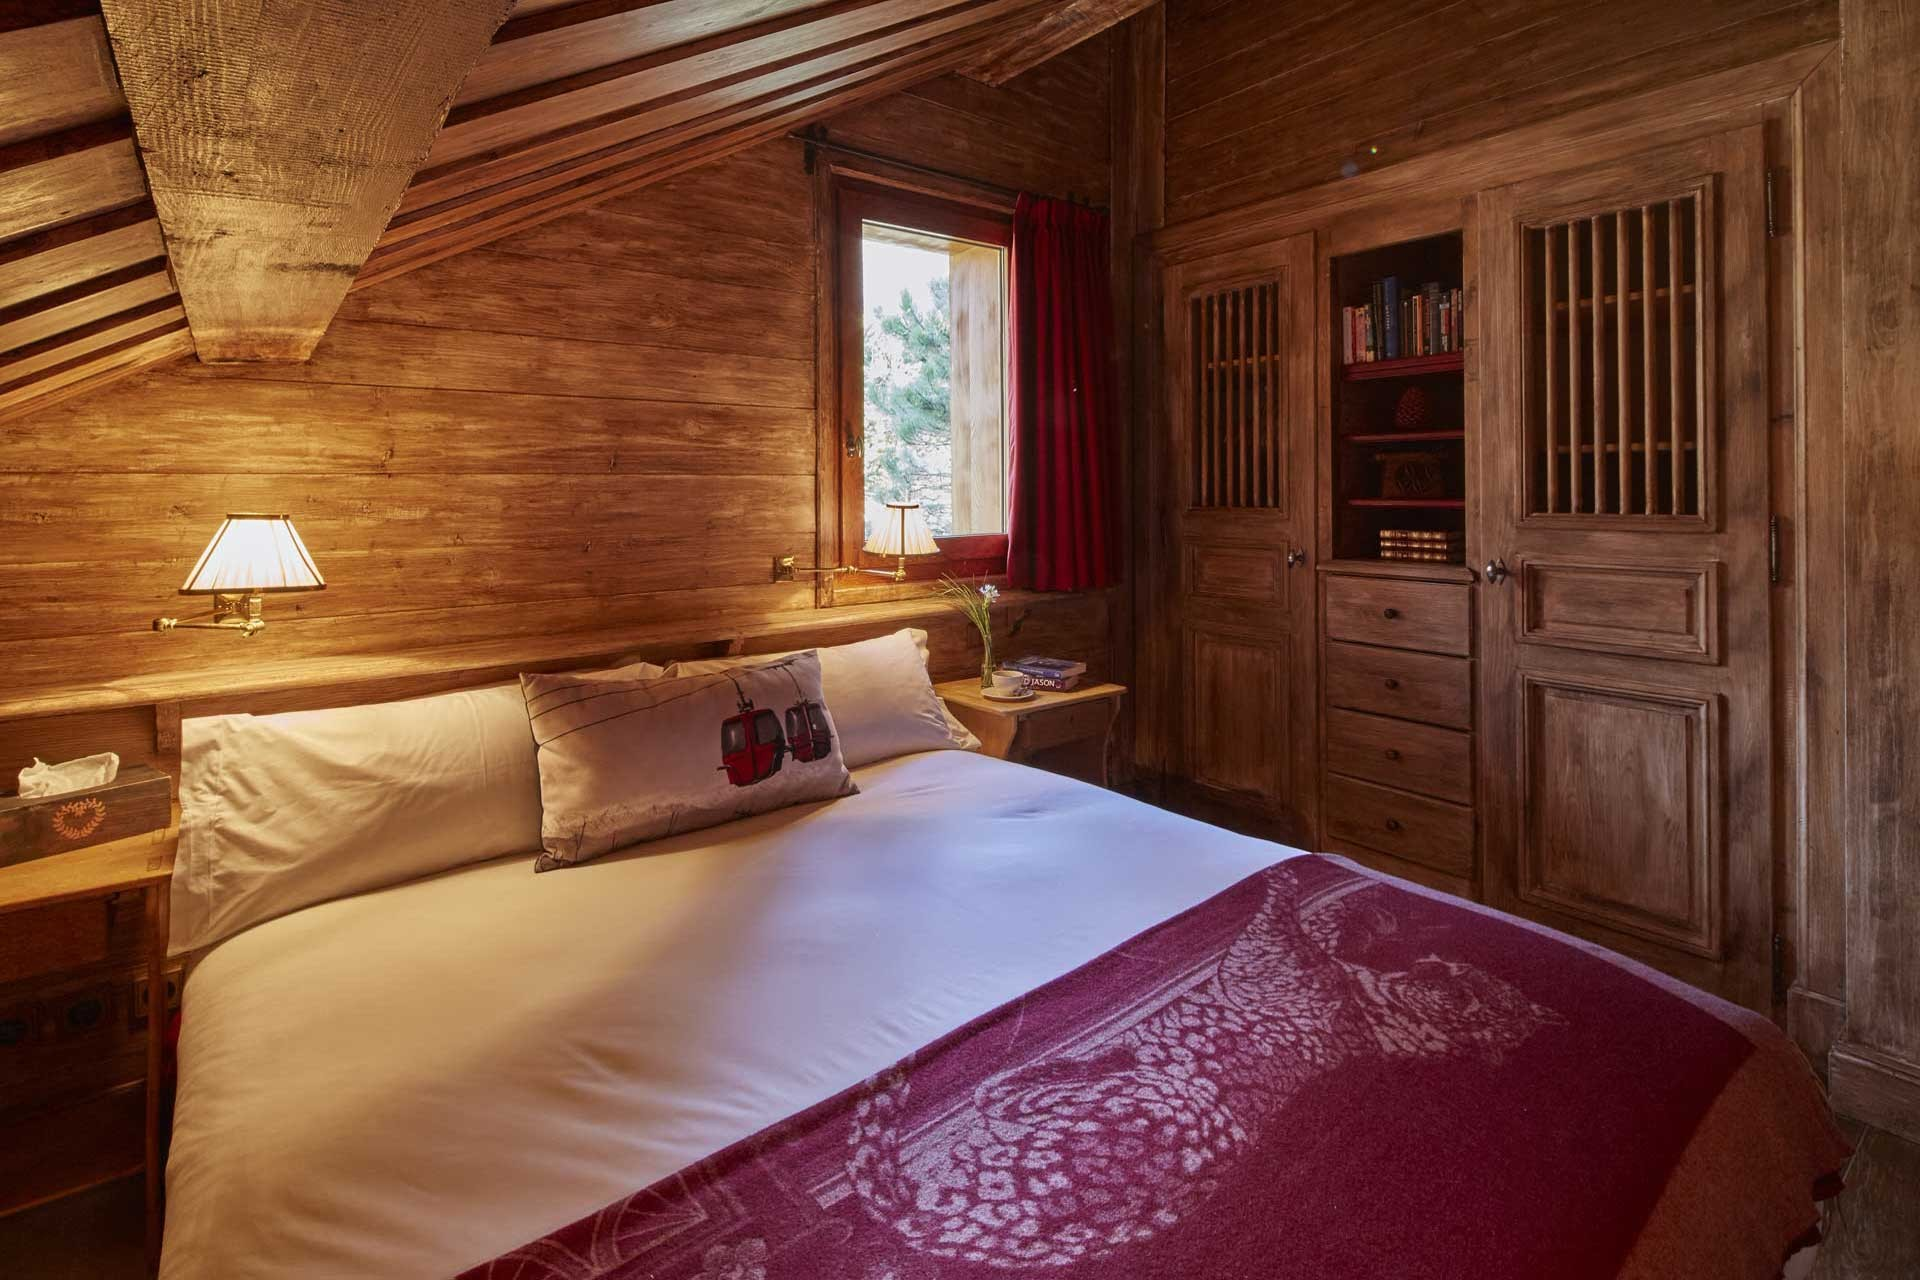 Méribel Location Chalet Luxe Ulomite Chambre 8